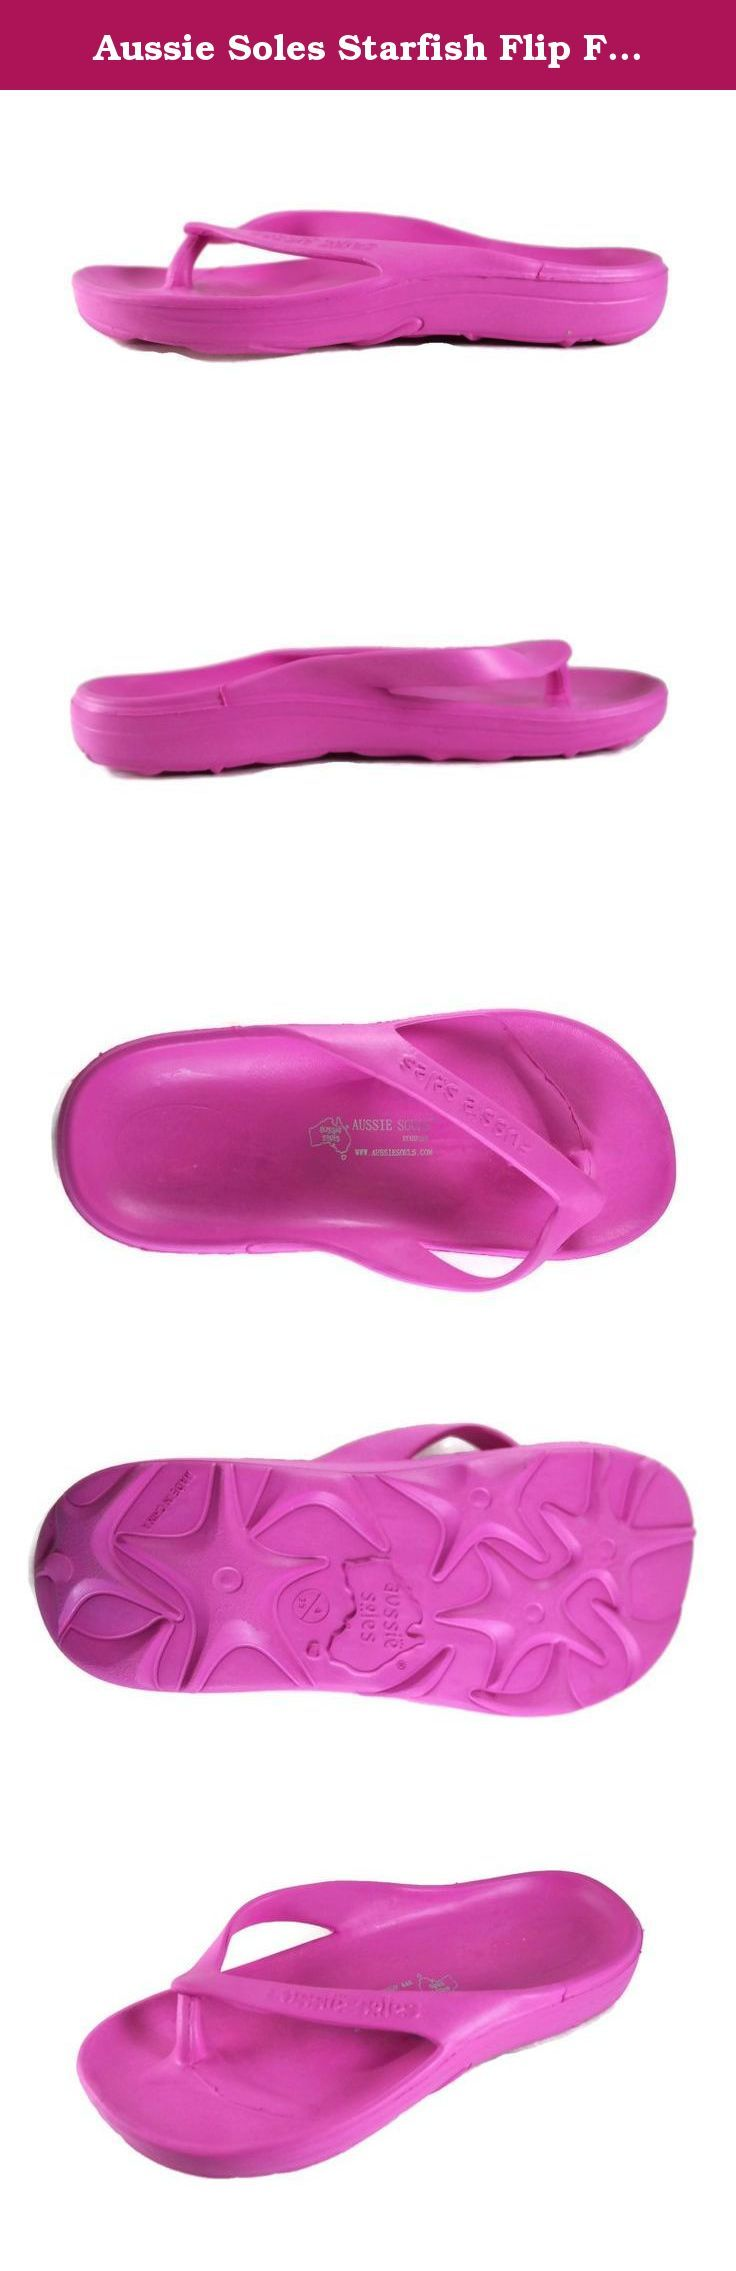 Aussie Soles Starfish Flip Flop Thong Sandals, Unises Youth (33 (US 2.5), Fuchsia). The extremely comfortable flip flop made from our unique AusLite anti bacterial polymer foam offering true arch support for the perfect fit. The Starfish is available in a number of solid and uniquely blended colors adding fun and style to your sole. This slip resistant foam has a starfish design on the sole leaving an impression on every beach. This attractive flip flop is made from a single injection…